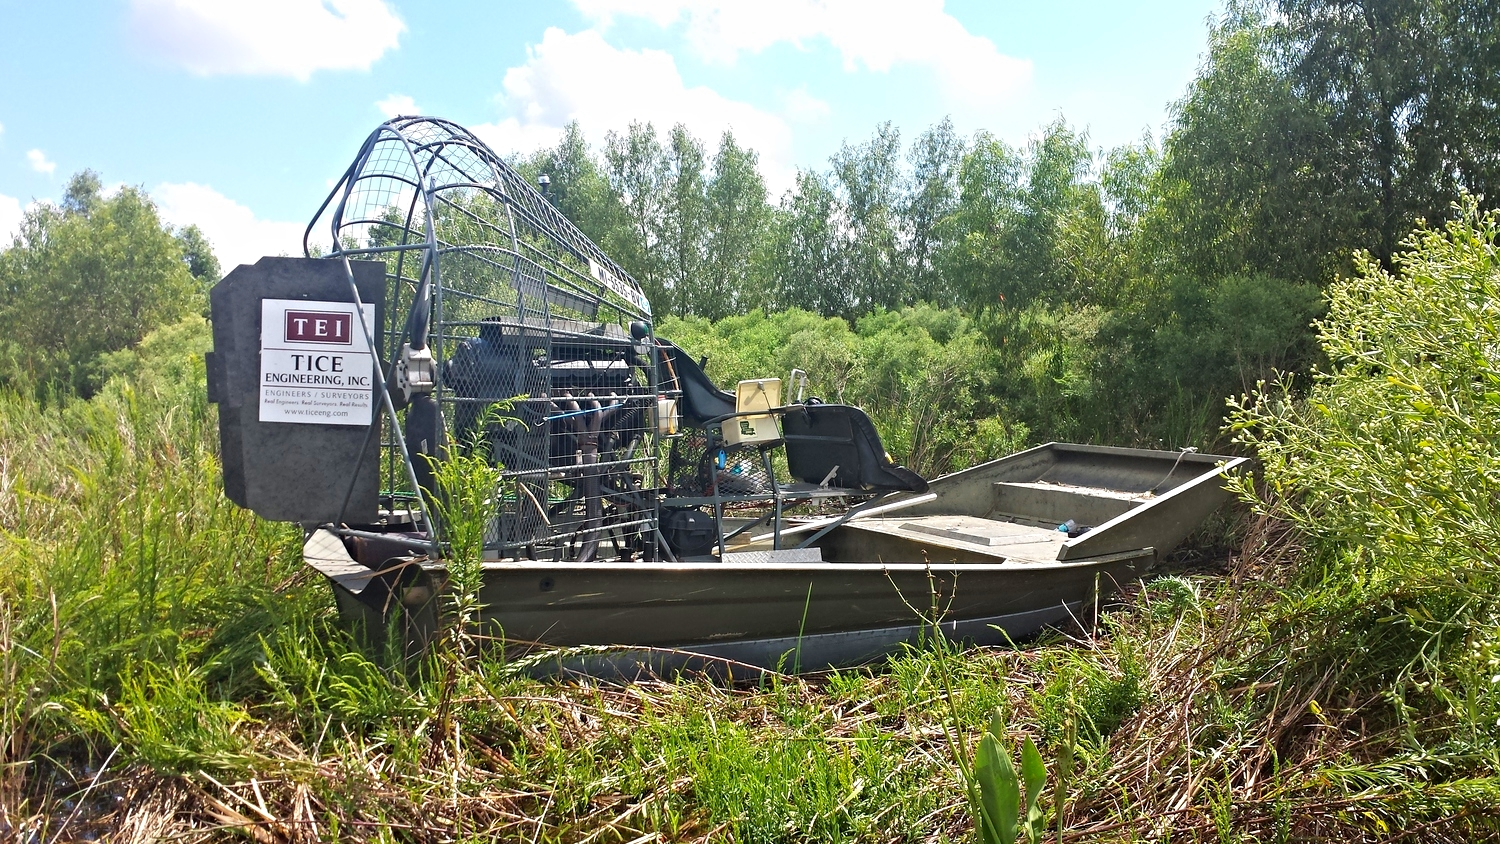 Tice Engineering's Air Boat on-site for the  Mississippi River LDSP and Bayou Dupont Marsh and Ridge Creation  project in Lafitte, Louisiana.